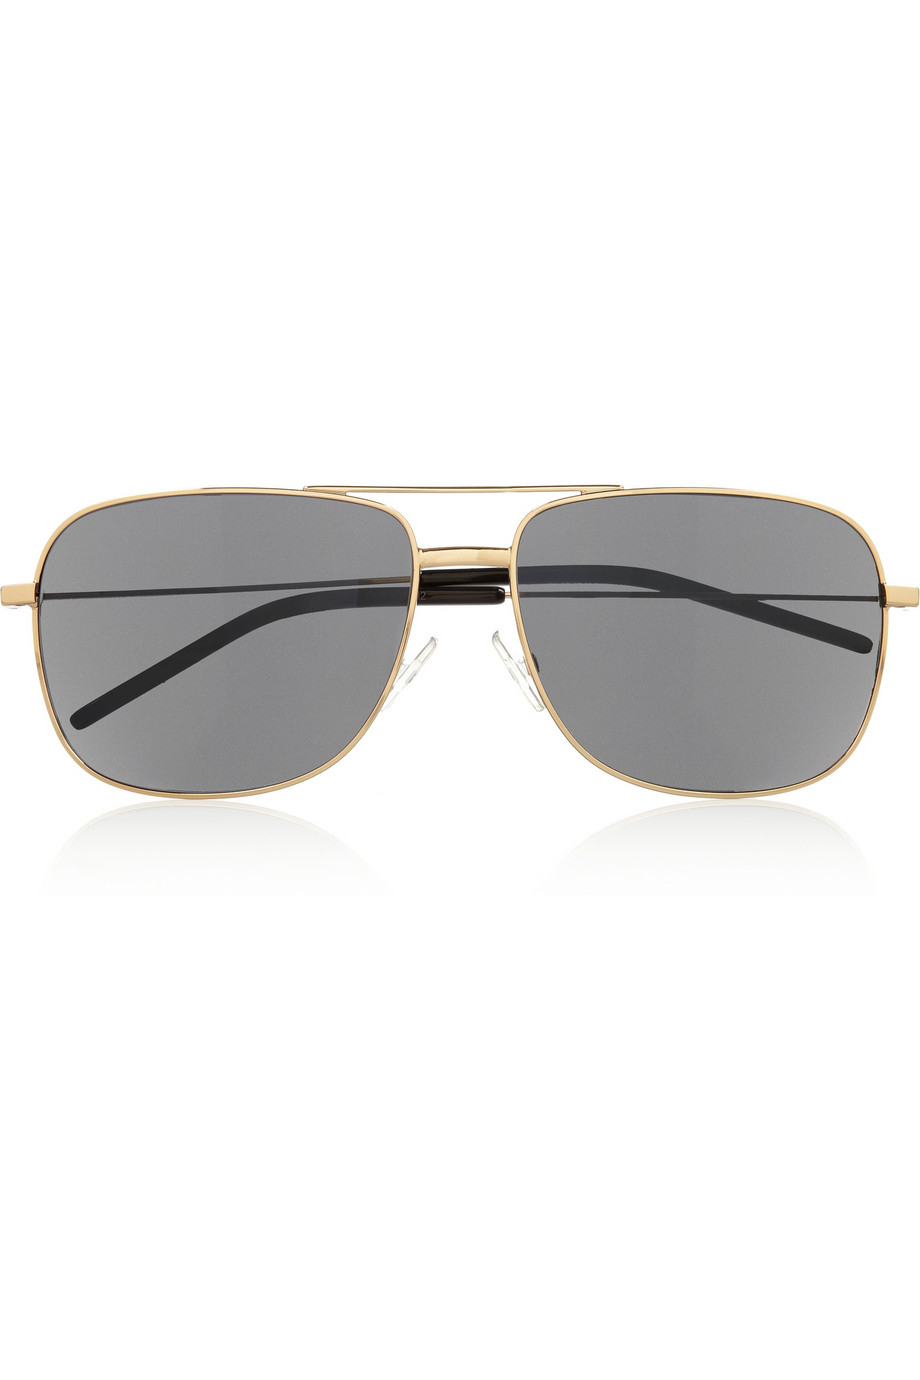 16dd8bfcf5 Saint Laurent Square-Frame Acetate Aviator-Style Sunglasses in ...